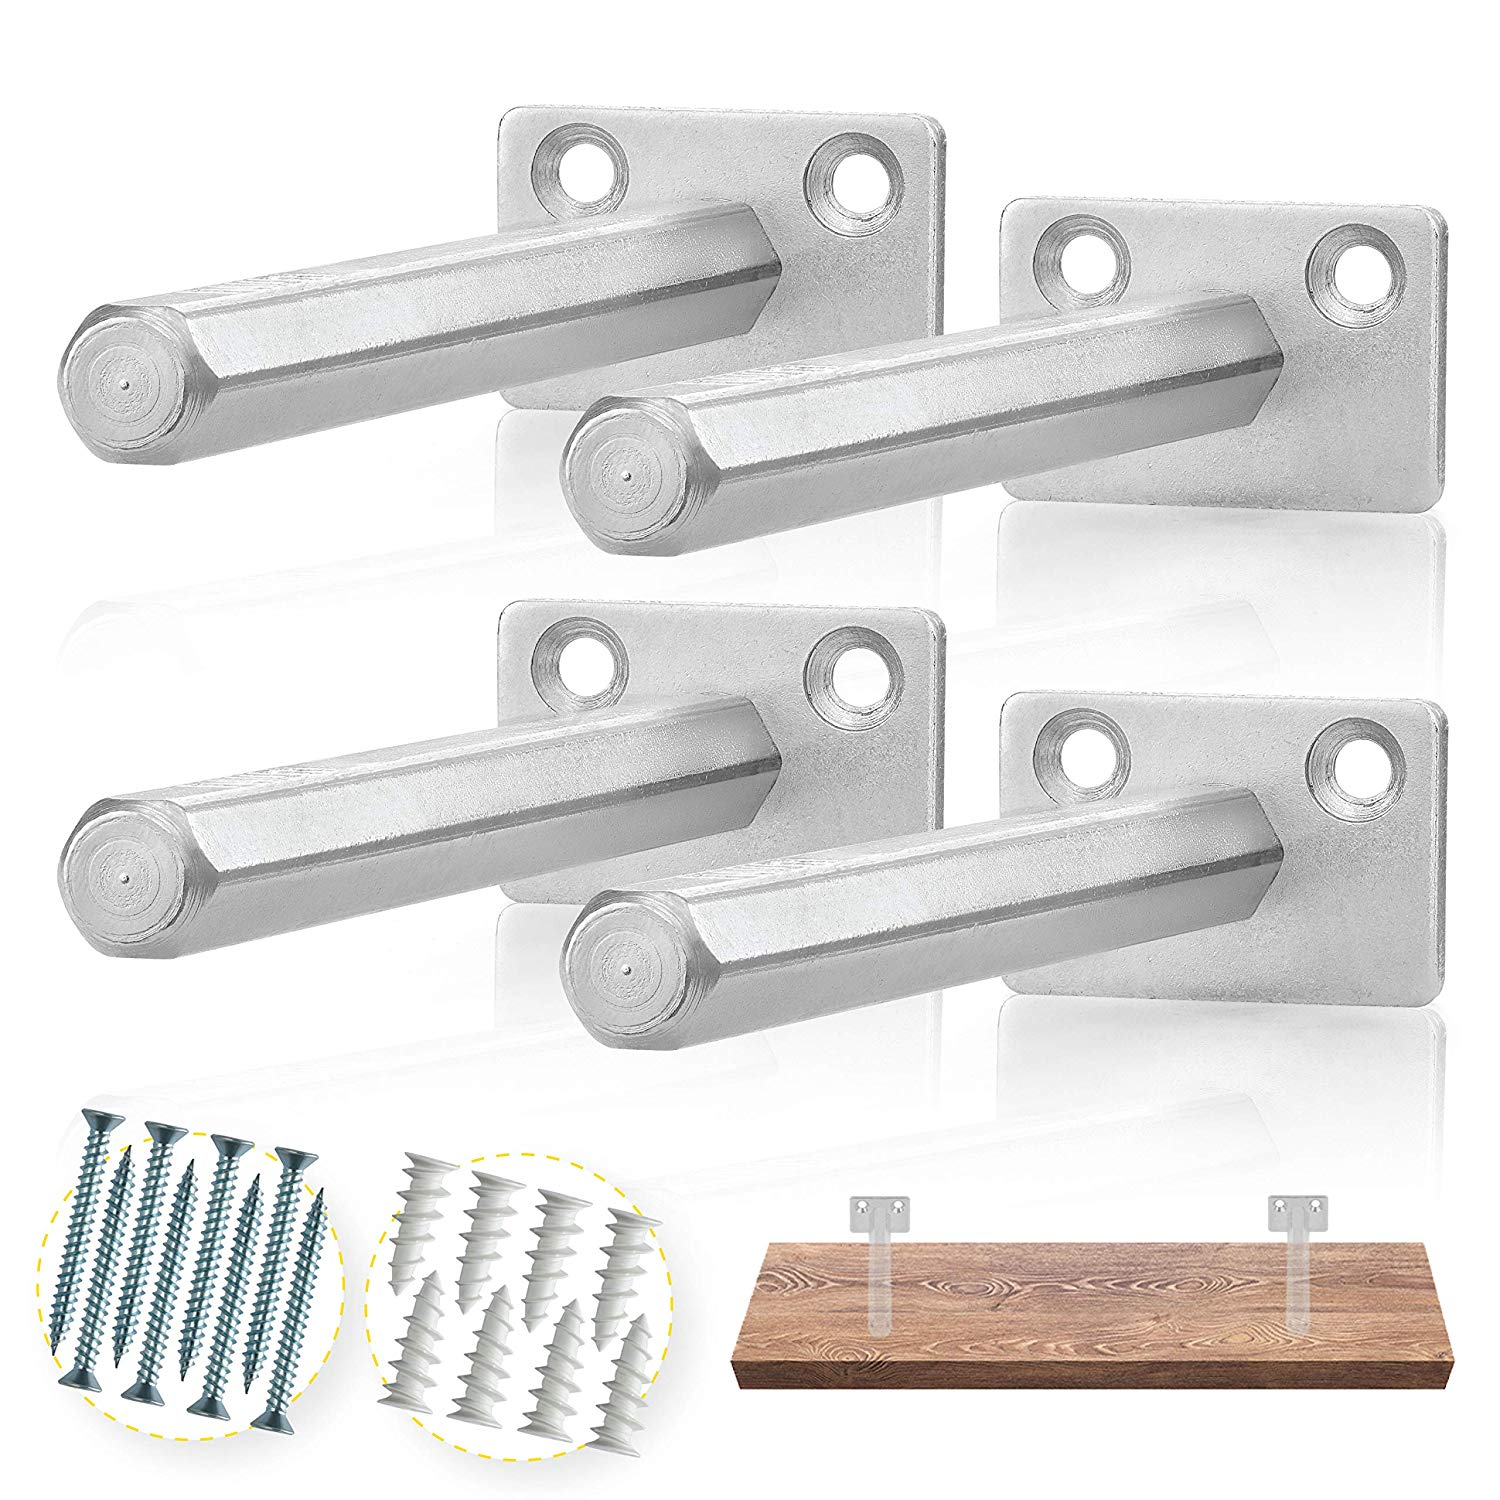 batoda floating shelf bracket pcs galvanized steel xuzl wall shelves with brackets blind supports hidden for wood concealed support flat screen mount cable box bathroom cabinet